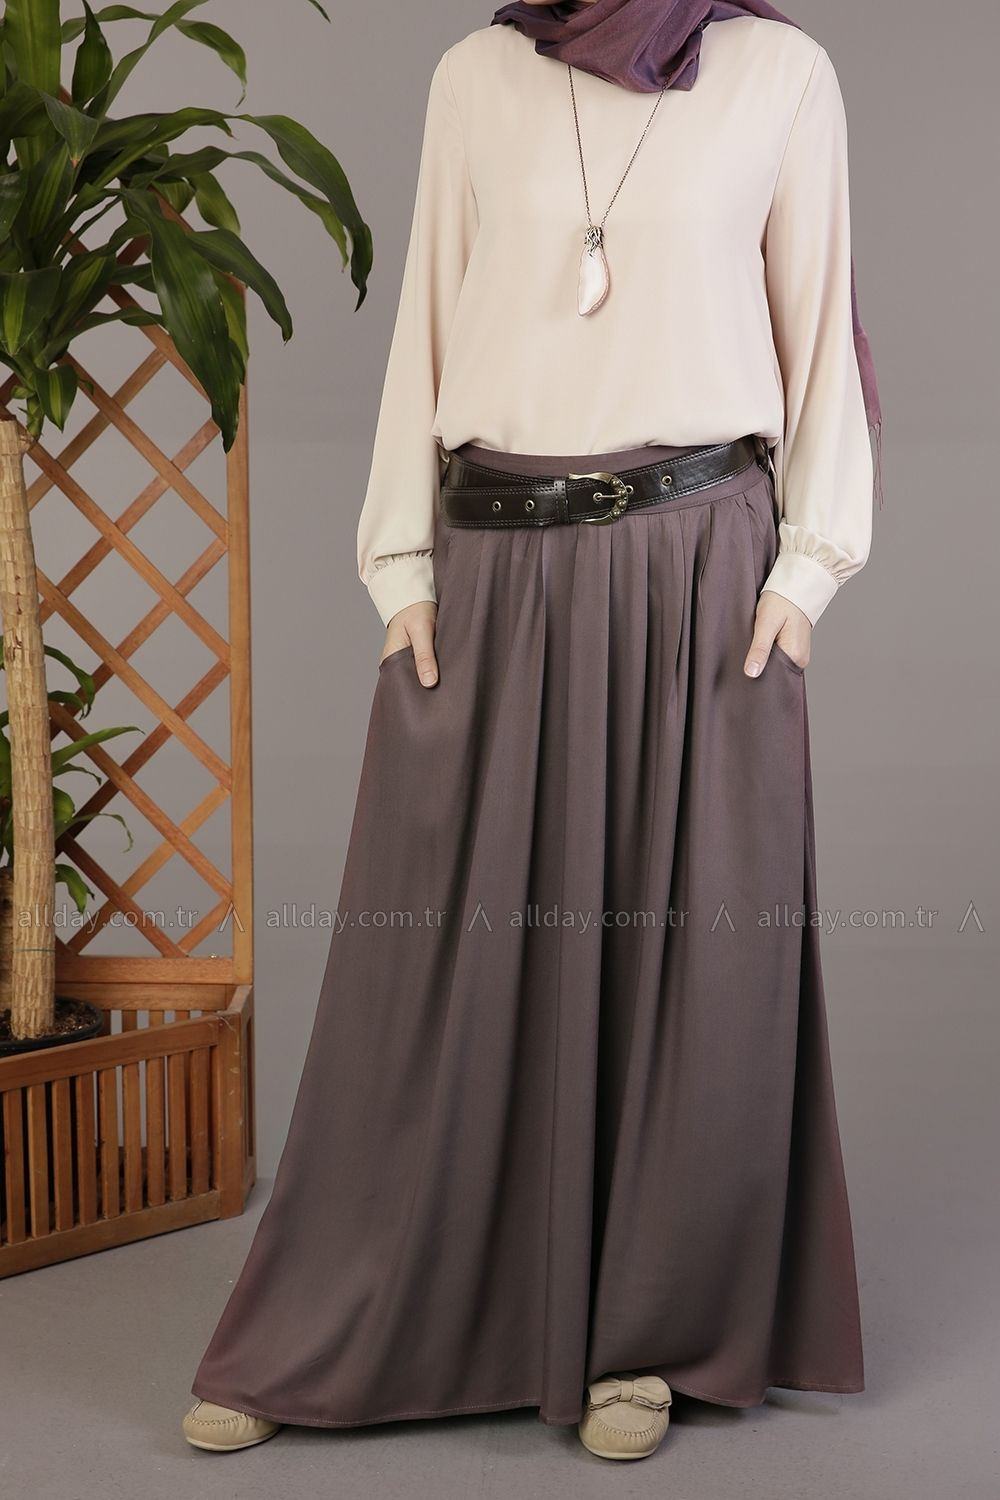 270b35854d An amazing outfit for every Muslim girl, Allday Turkish fashion, maxi skirt  with a blouse, new fall hijab style